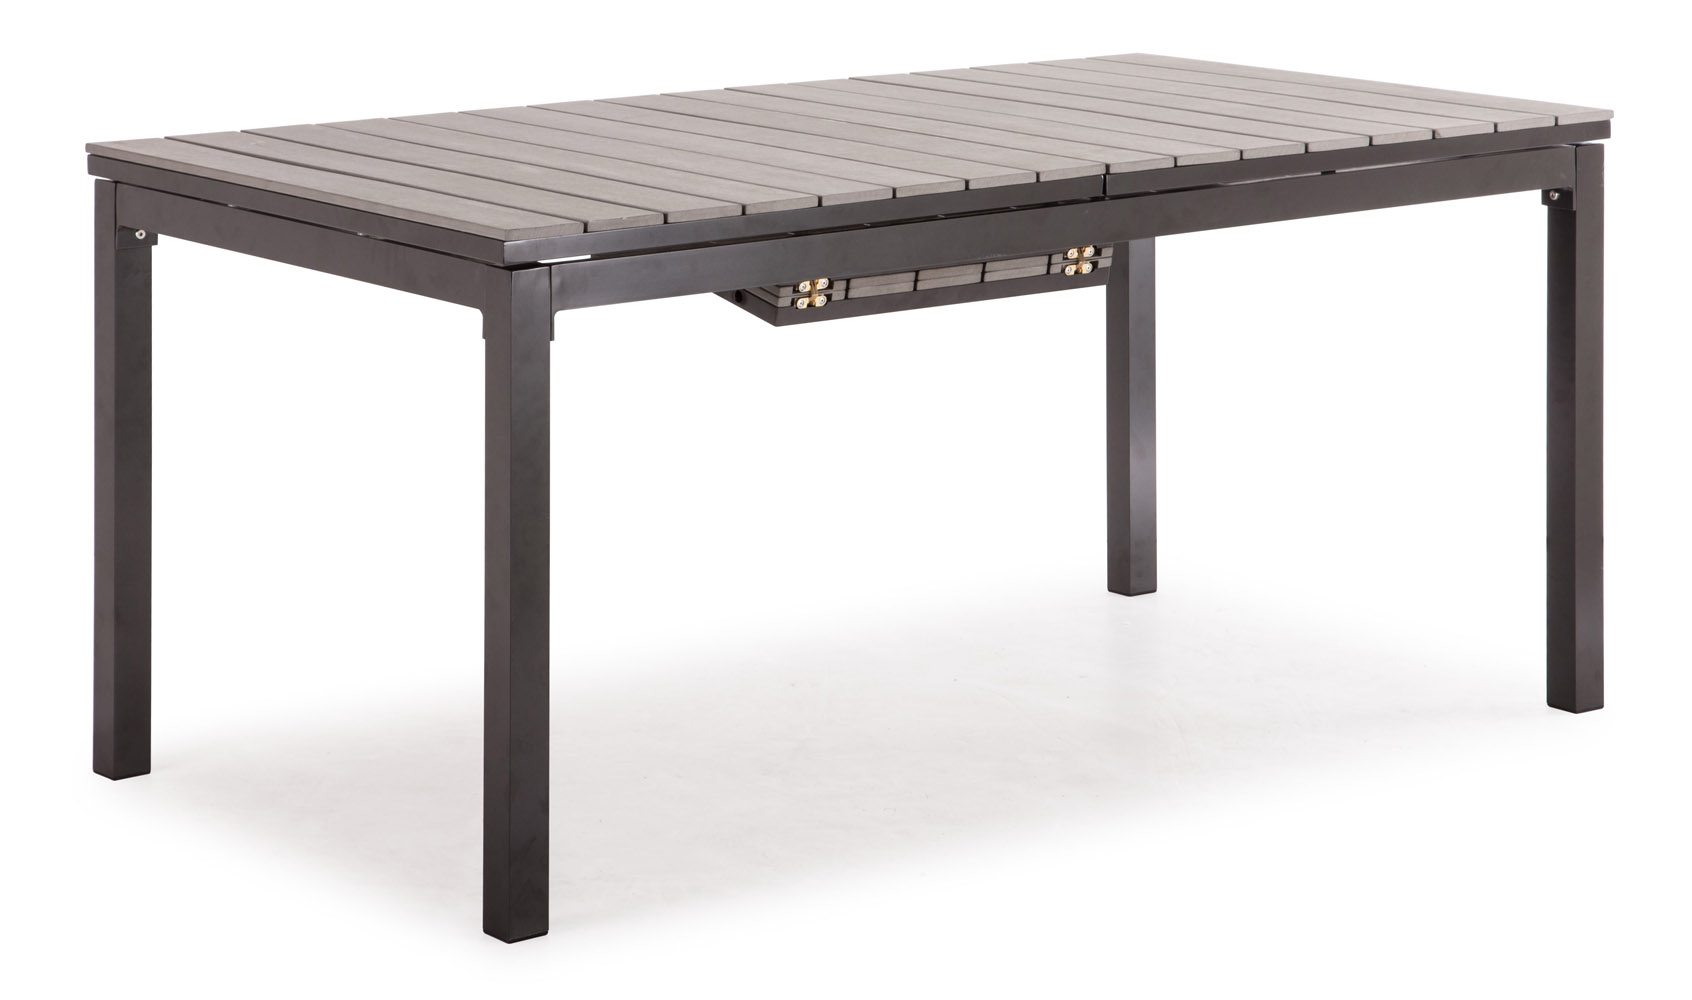 Rivage Gray Aluminum and Faux Wood Outdoor Extension  : rivageextensiondiningtablegray2 from www.zurifurniture.com size 1692 x 1000 jpeg 135kB